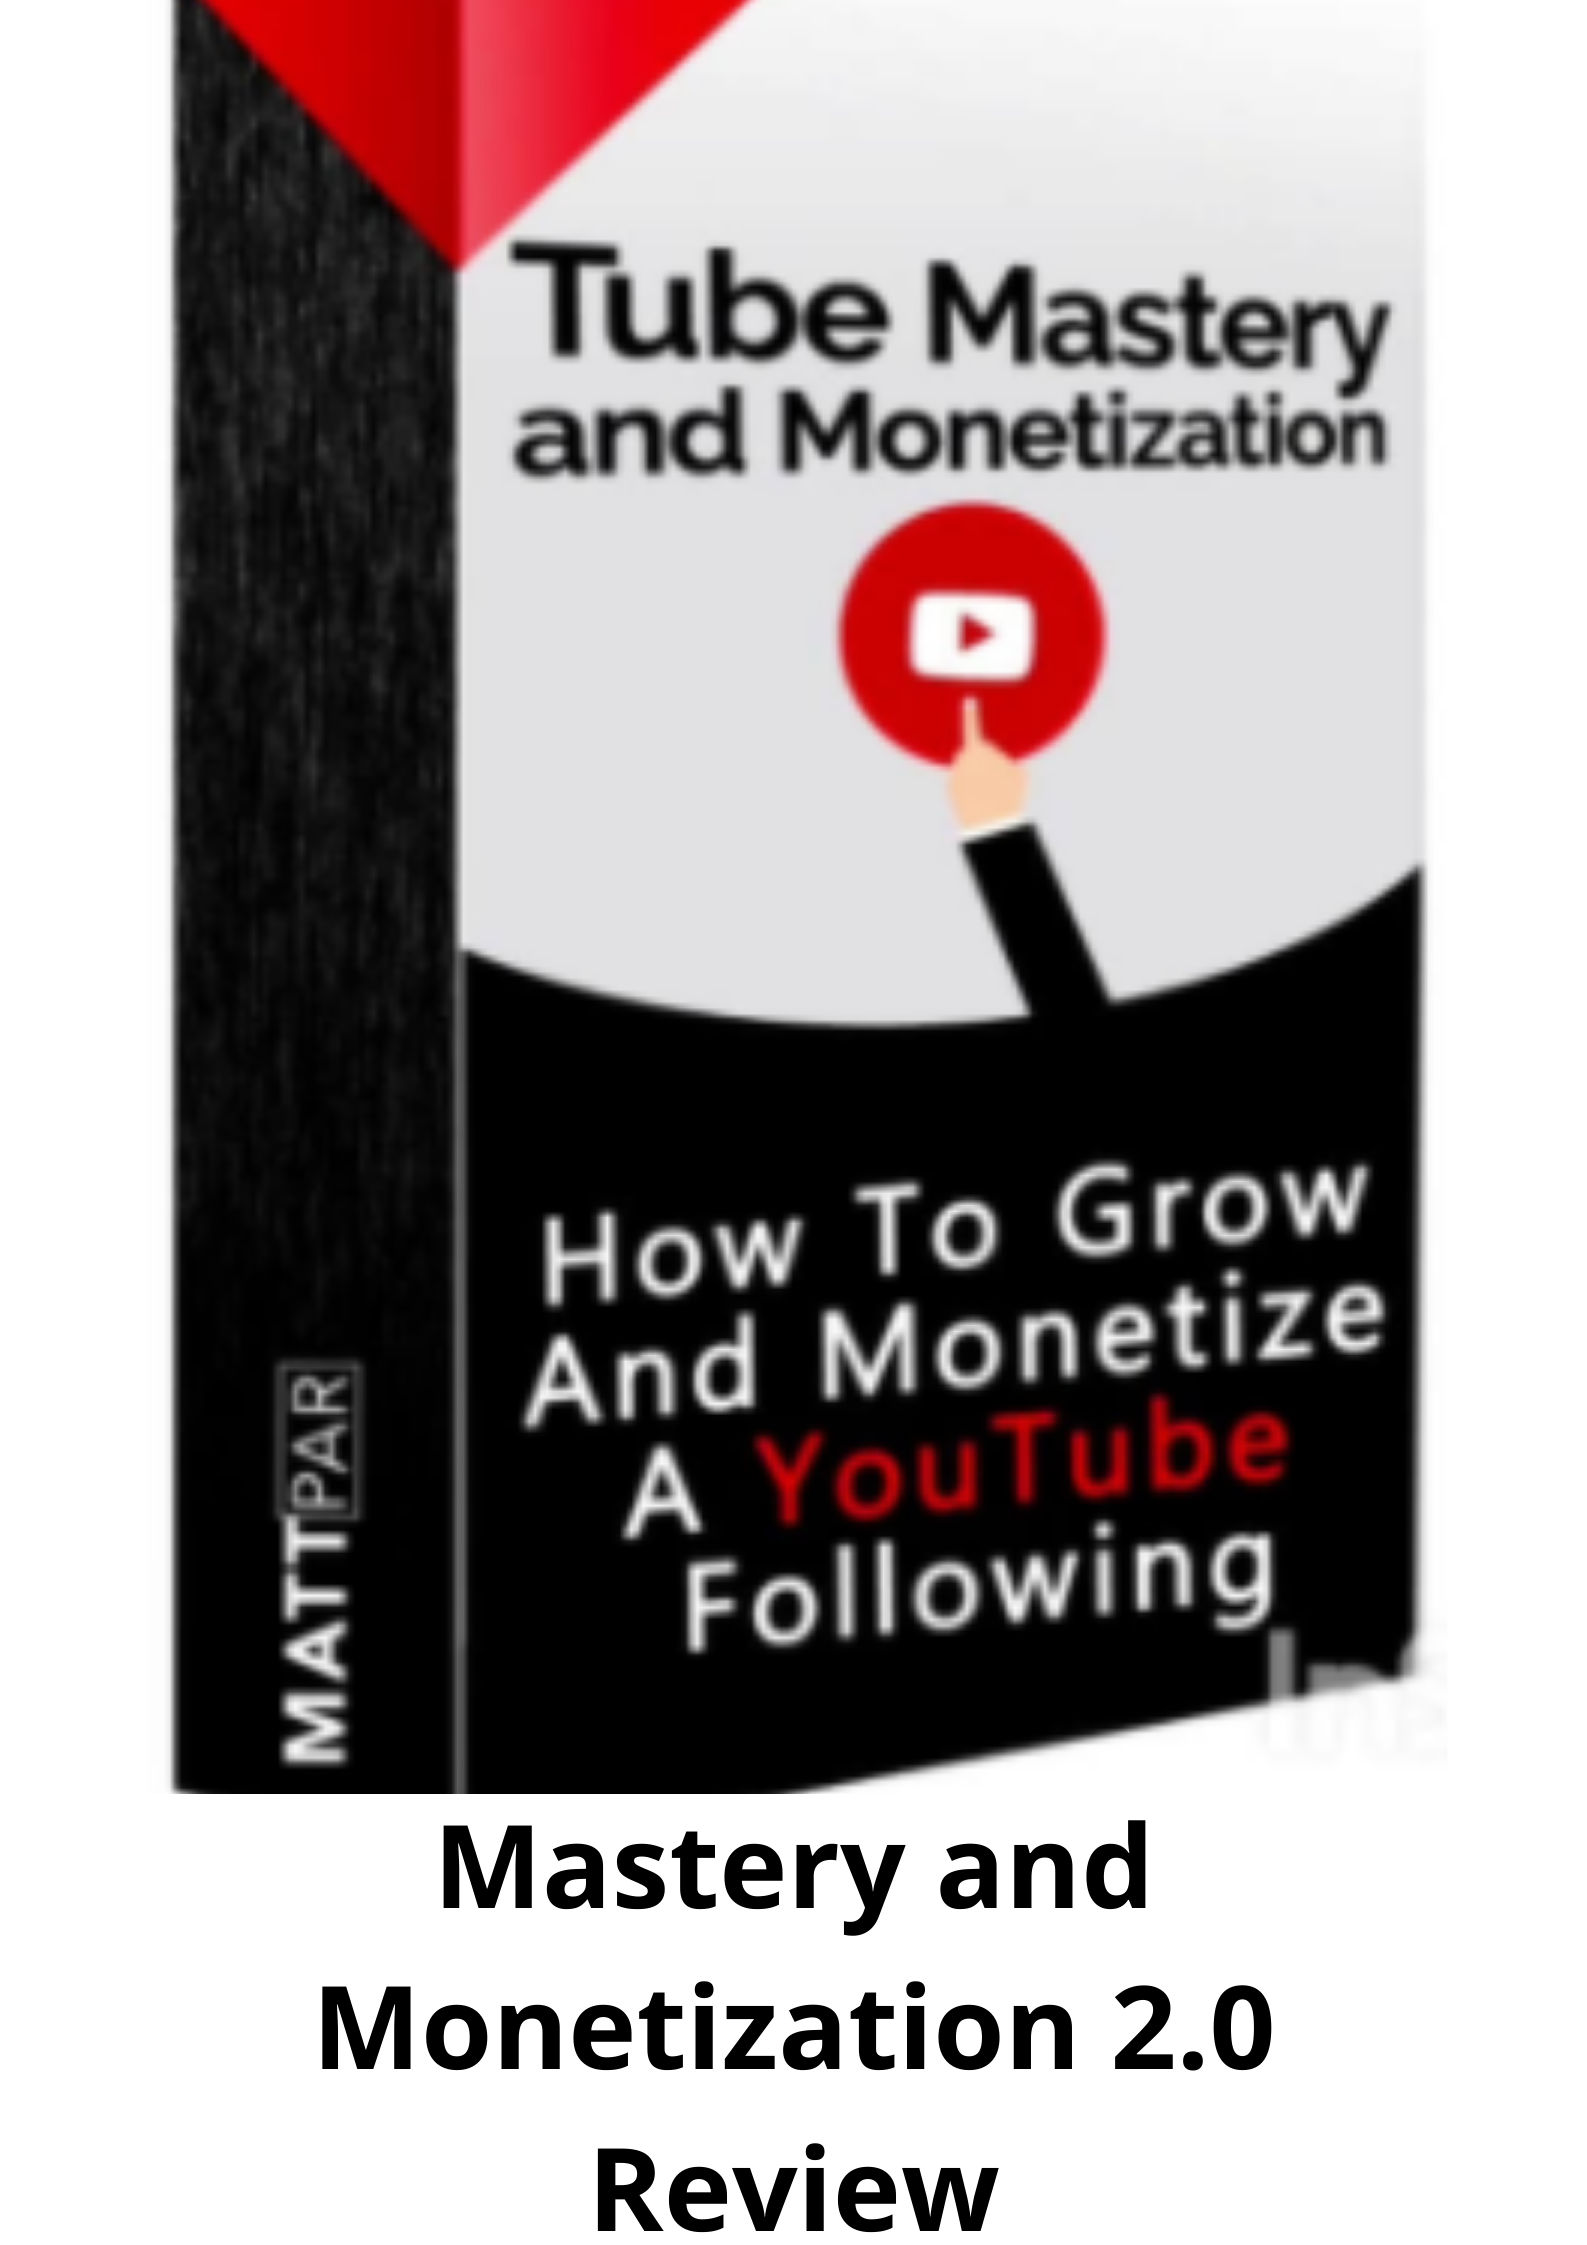 Tube Mastery and Monetization 2.0 Review